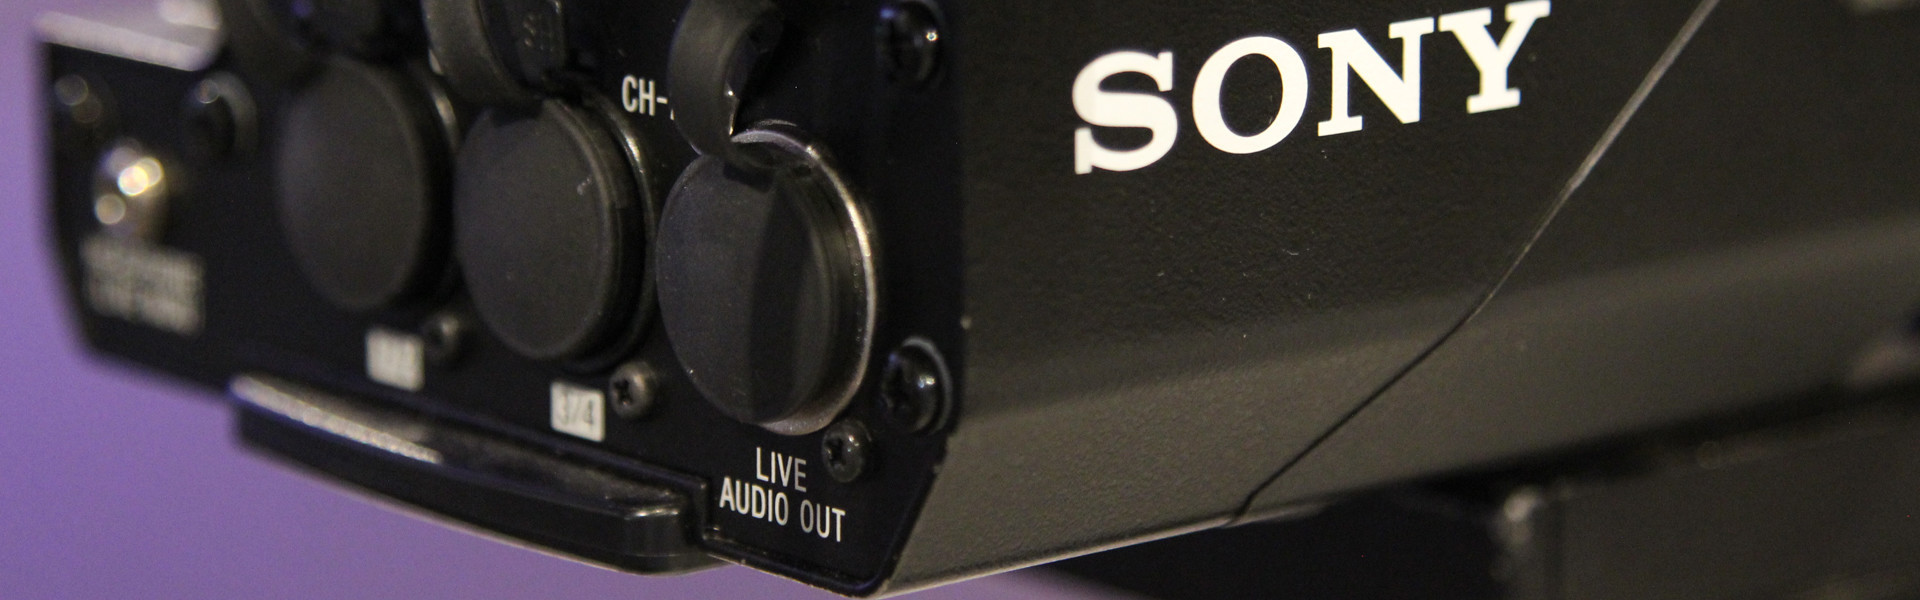 Header image for article Sony Announces the New PMW-300